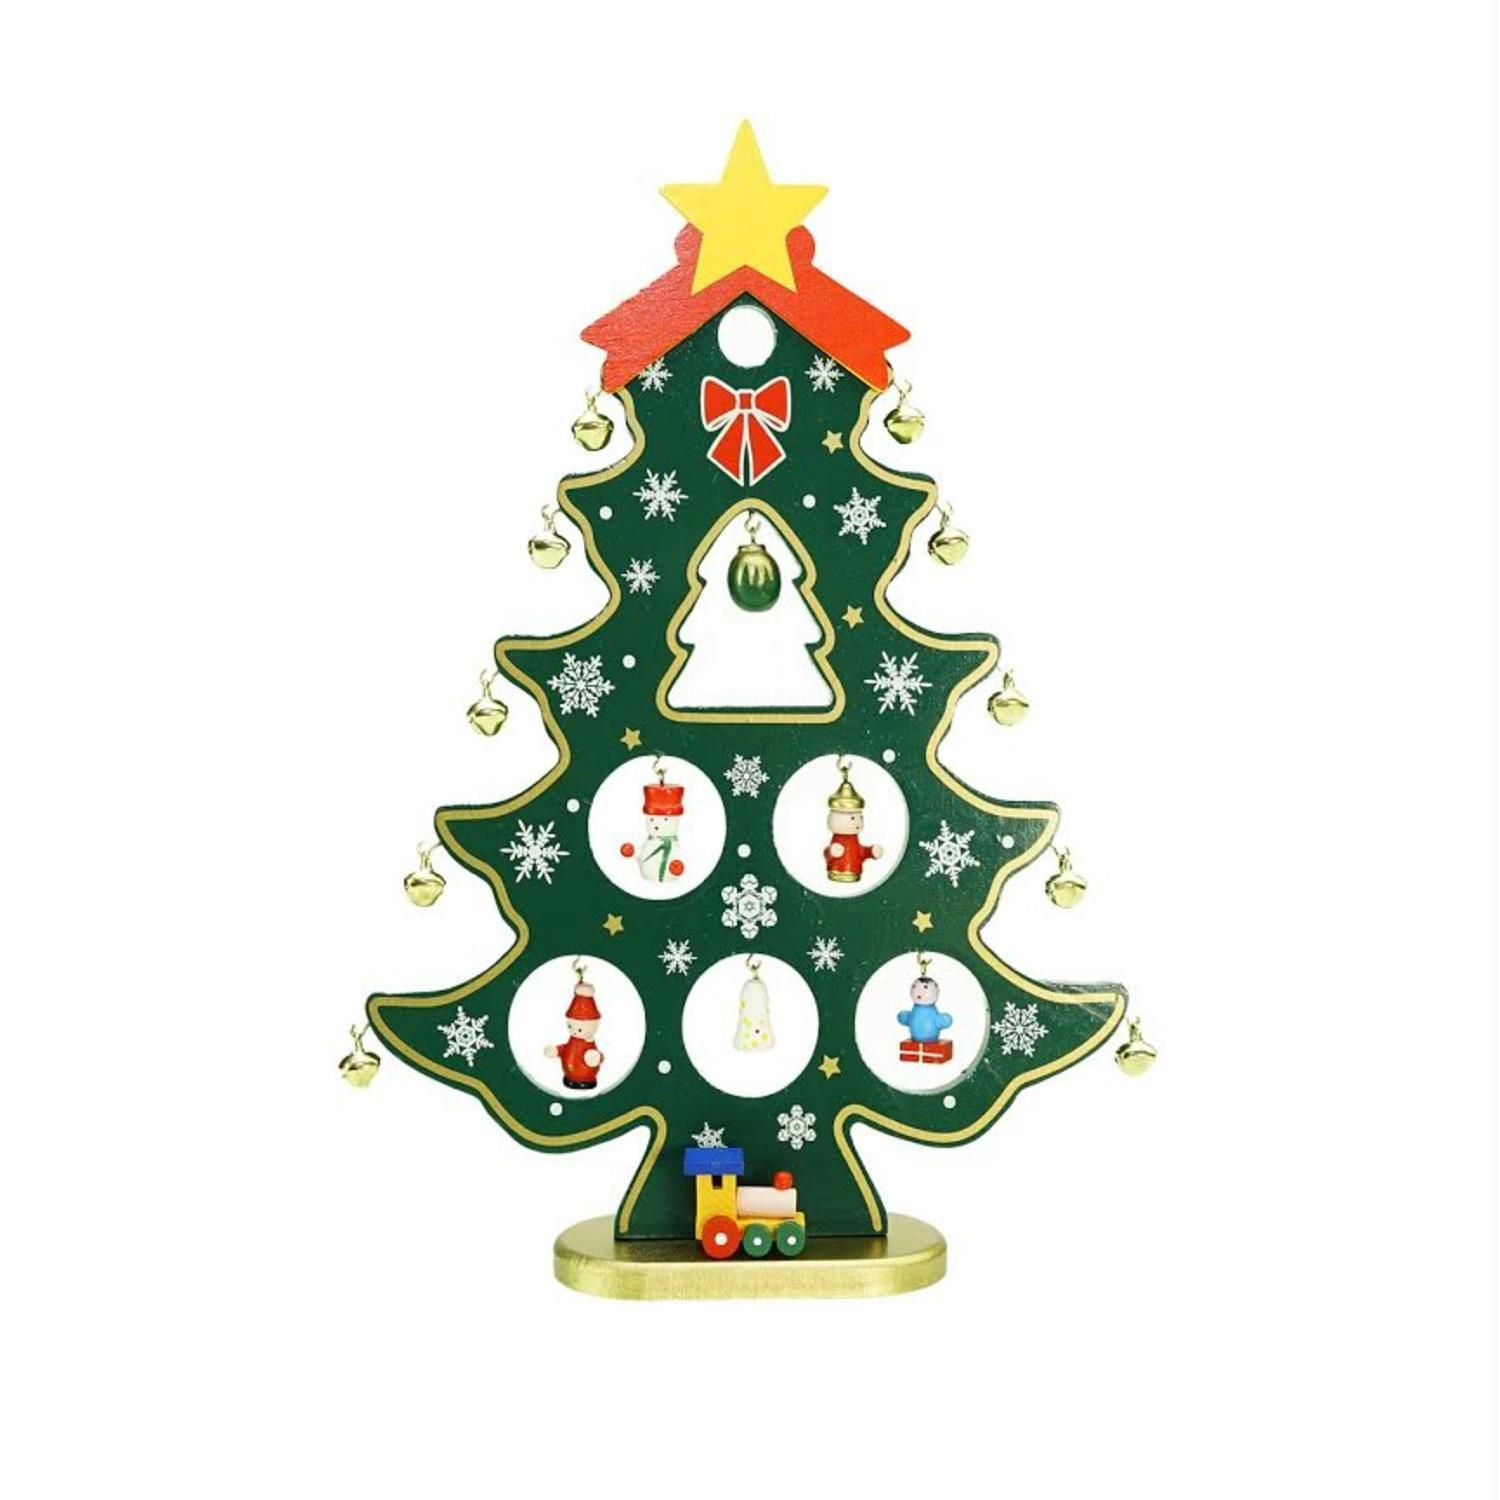 1125 Wooden Christmas Tree Cut Out With Miniature Ornaments Table Top